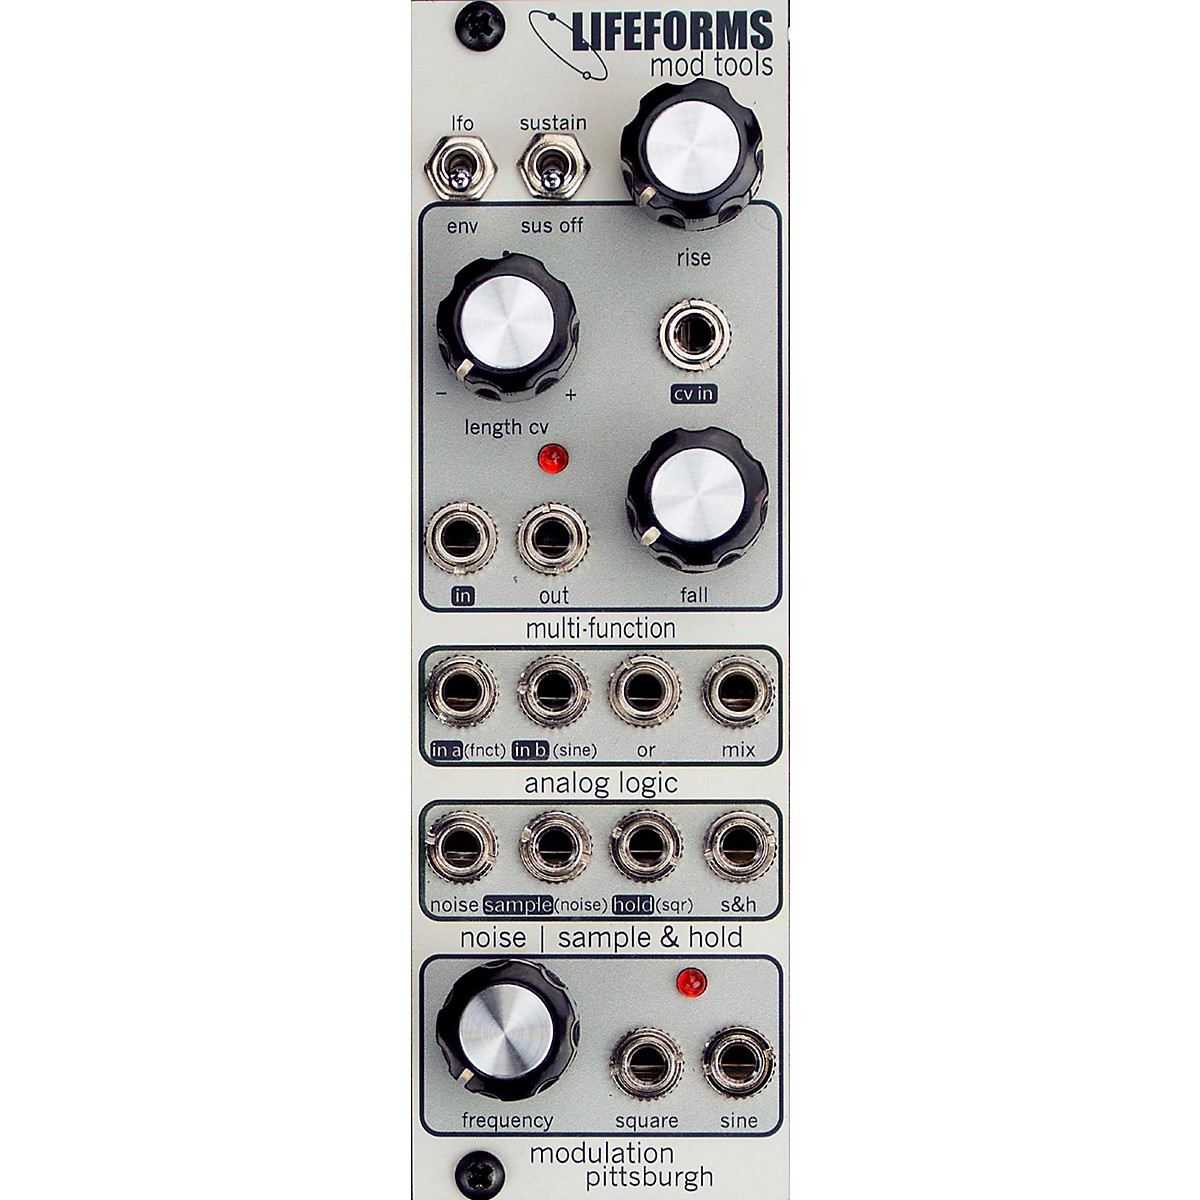 Pittsburgh Modular Synthesizers LIFEFORMS MOD TOOLS